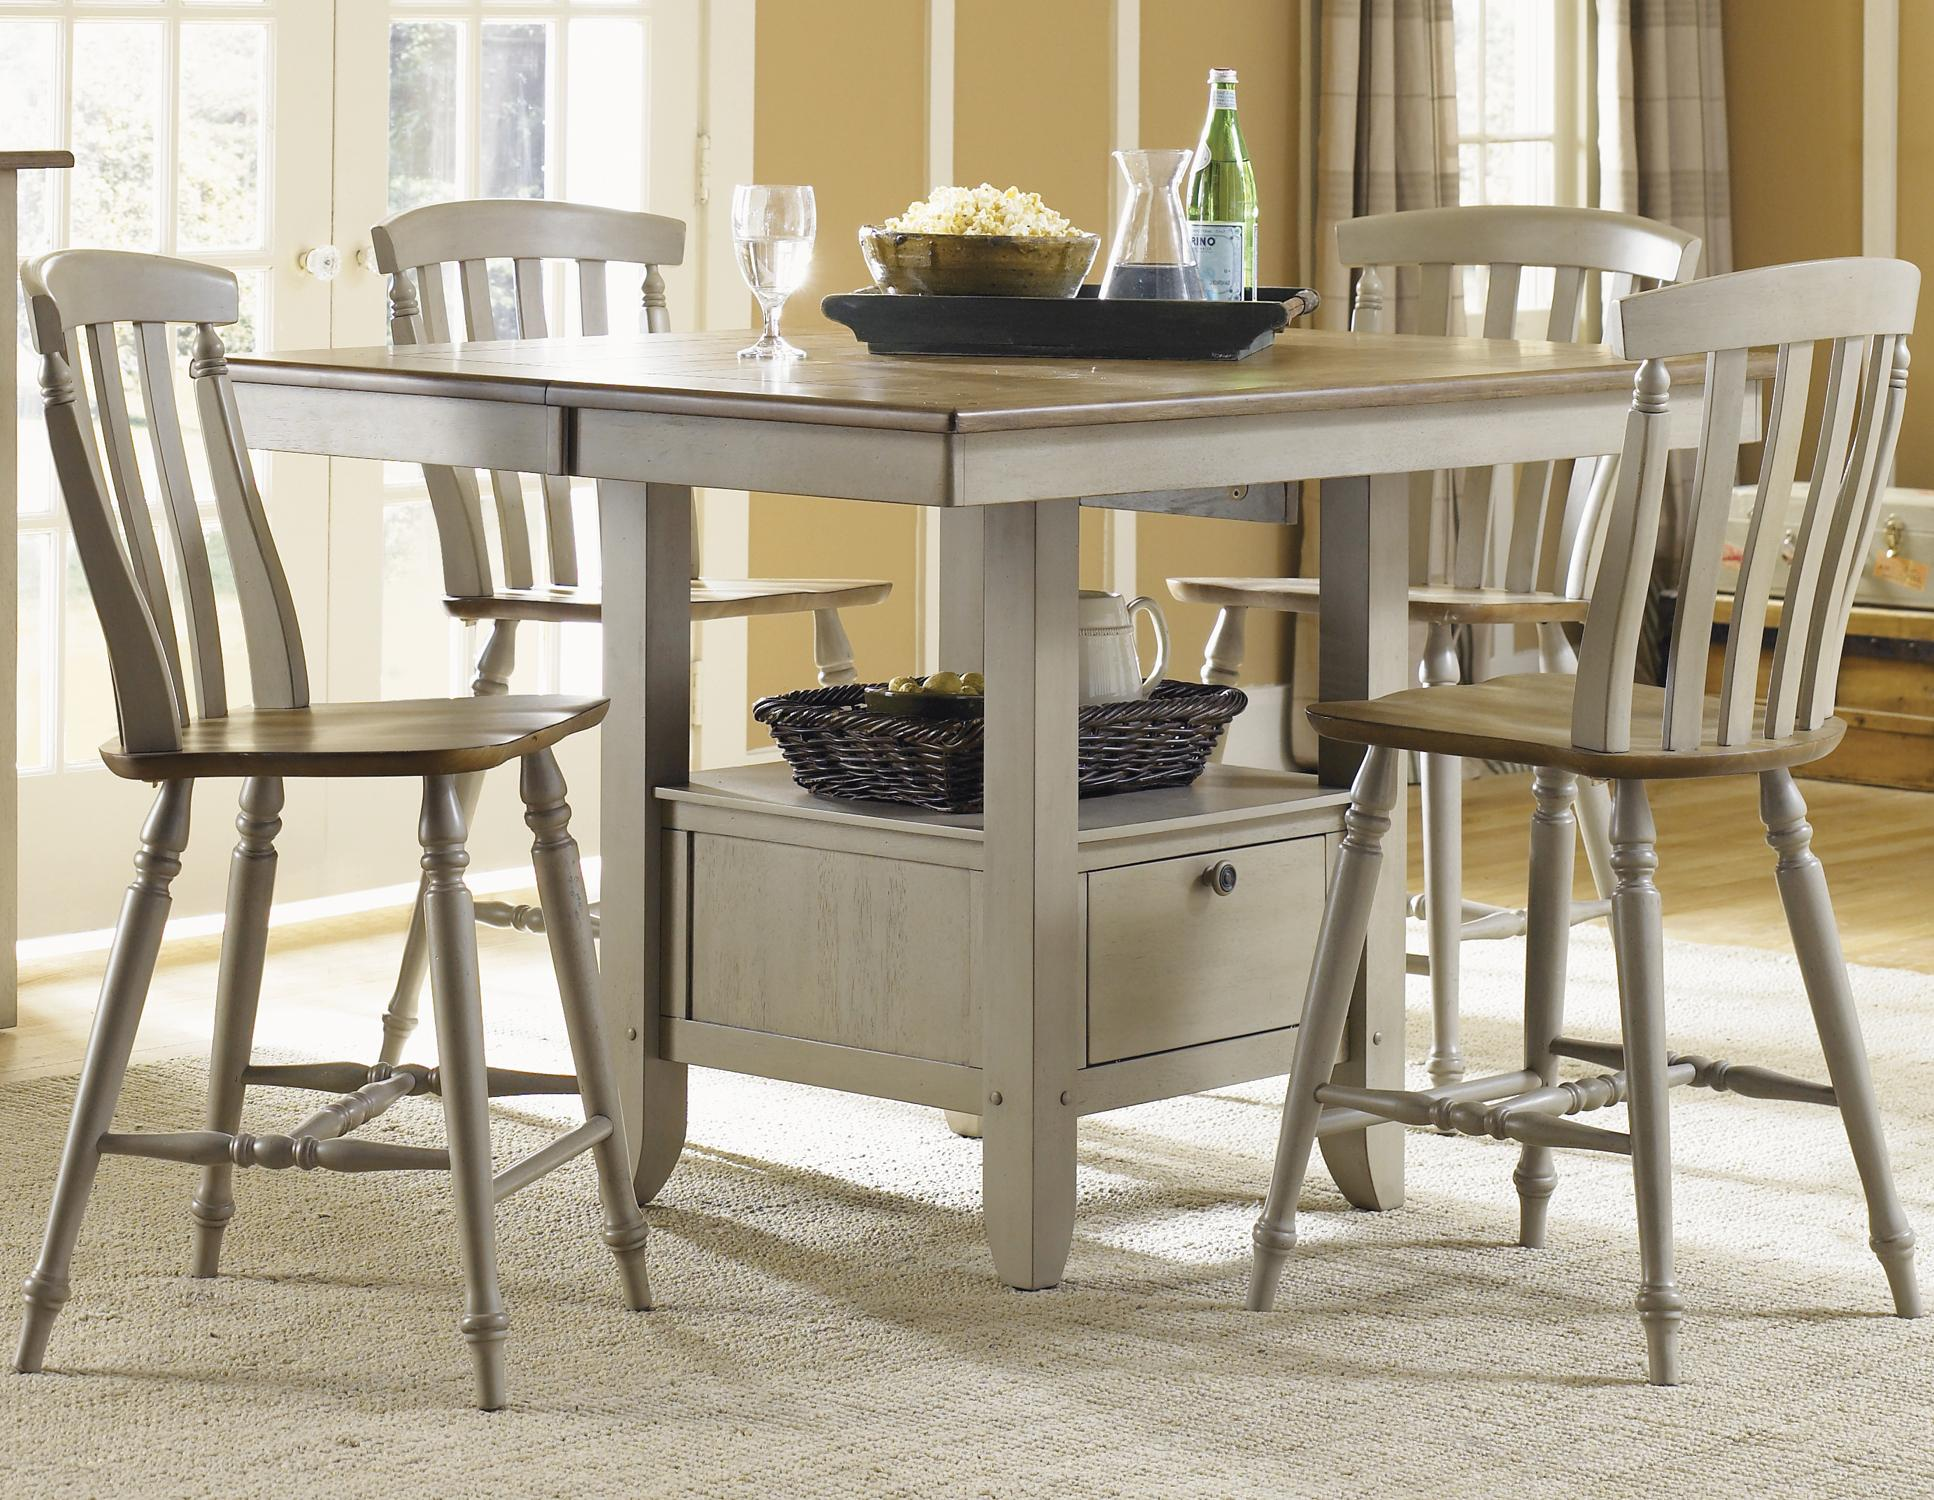 Liberty furniture al fresco five piece gathering table for Furniture options